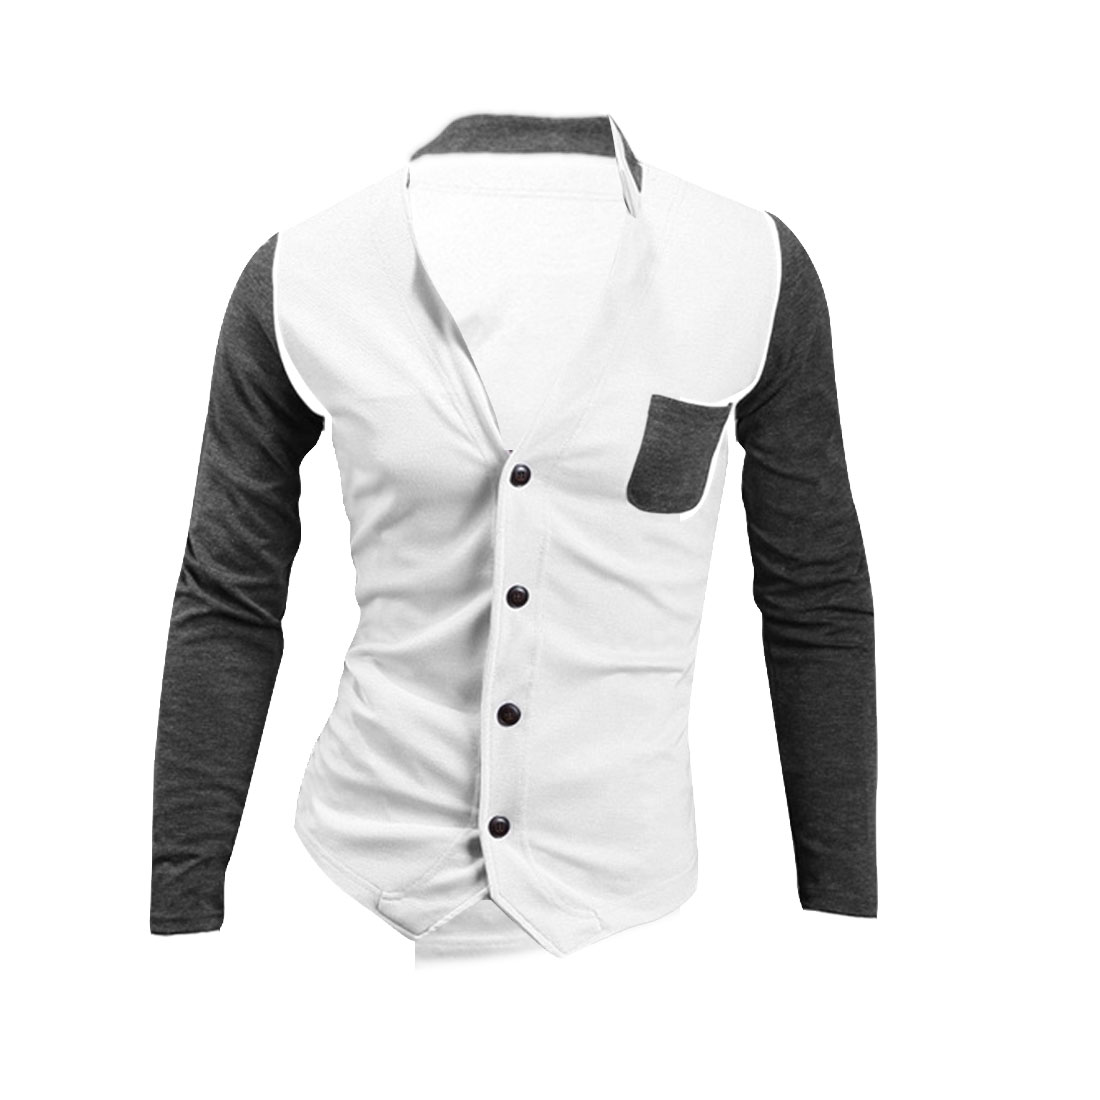 Single-Breasted Front Contrast Color White Dark Gray Shirt for Man L